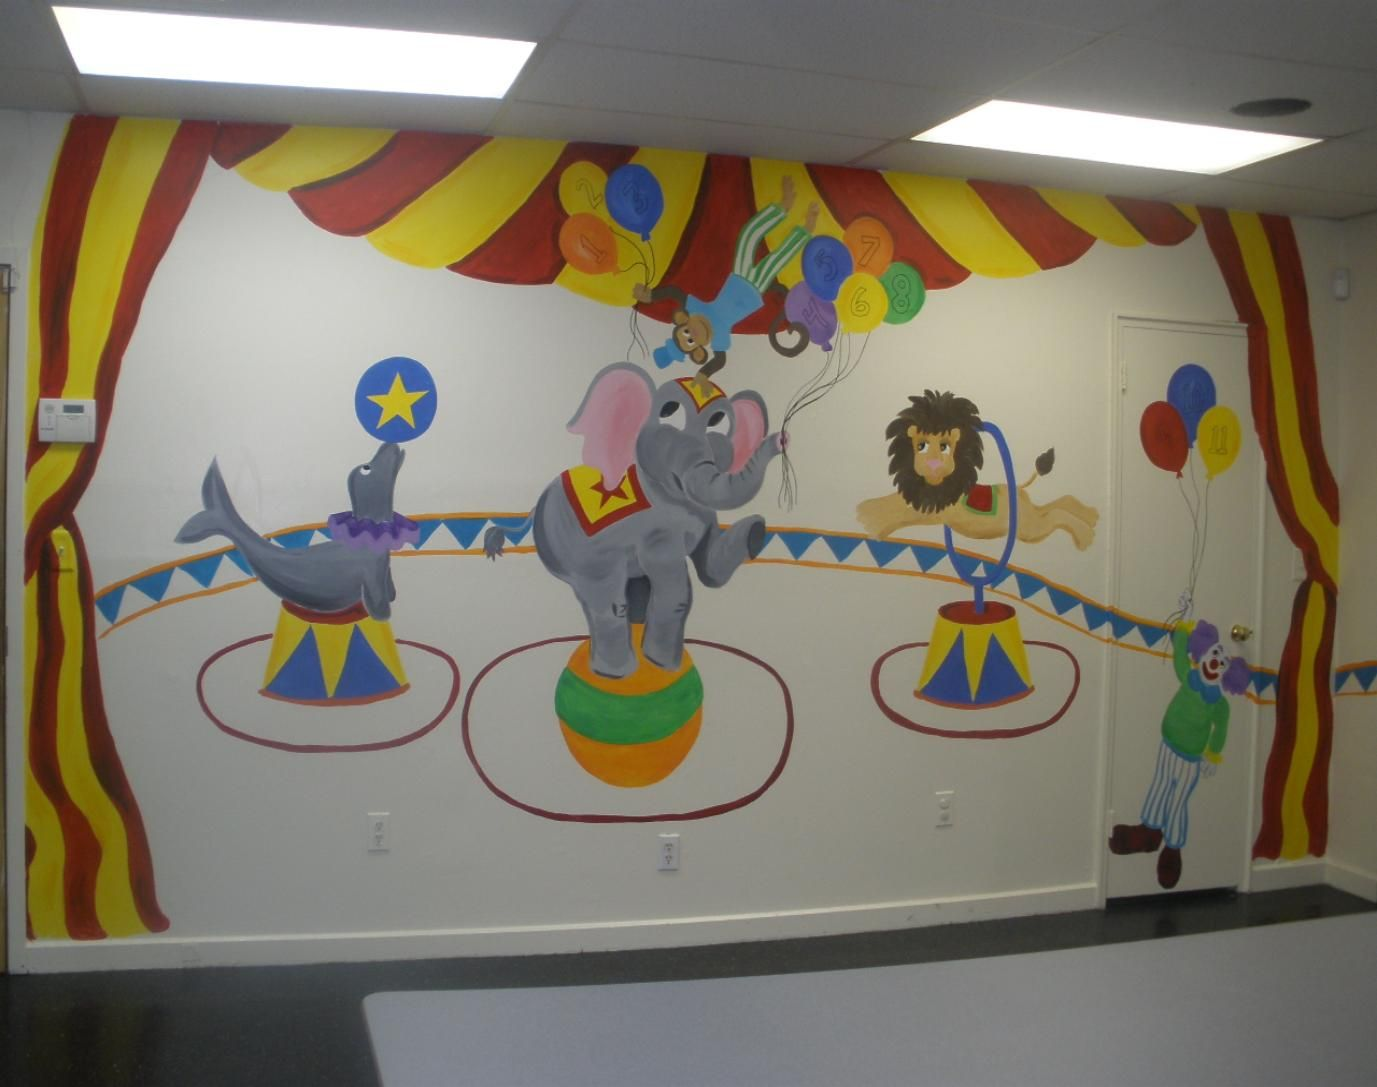 Daycare Circus Mural D Daycare Elephant On A Ball Clown